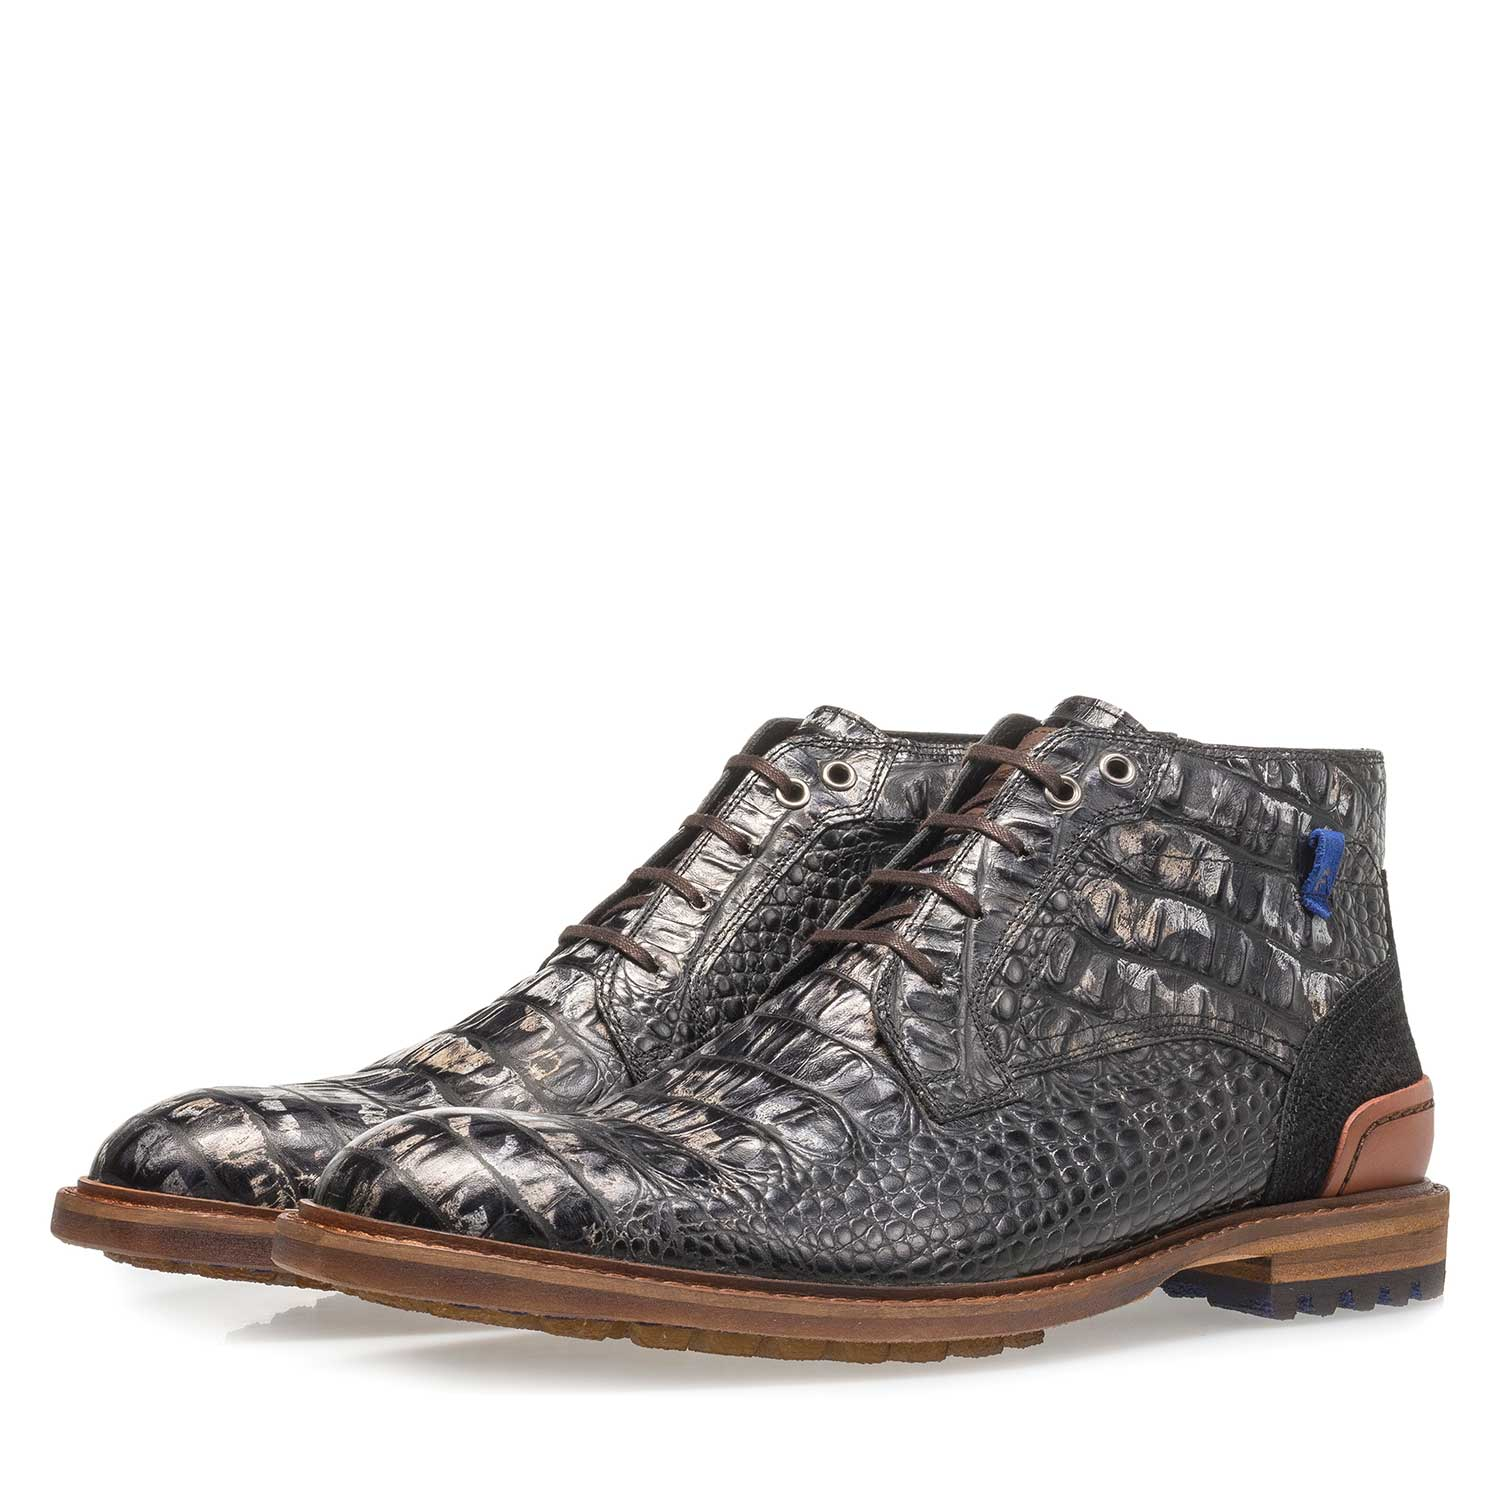 20228/21 - Black leather lace boot with croco print